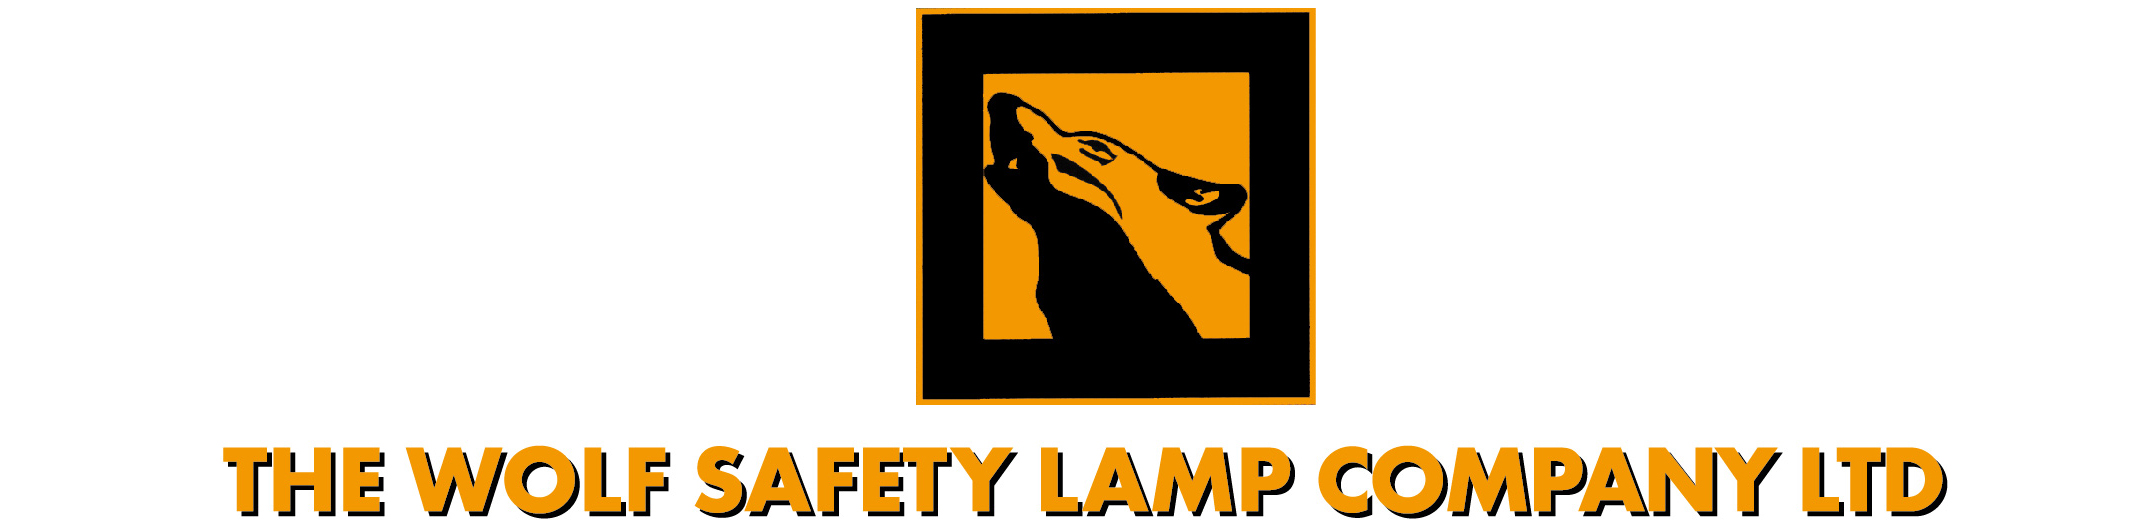 THE WOLF SAFETY LAMP COMPANY LTD